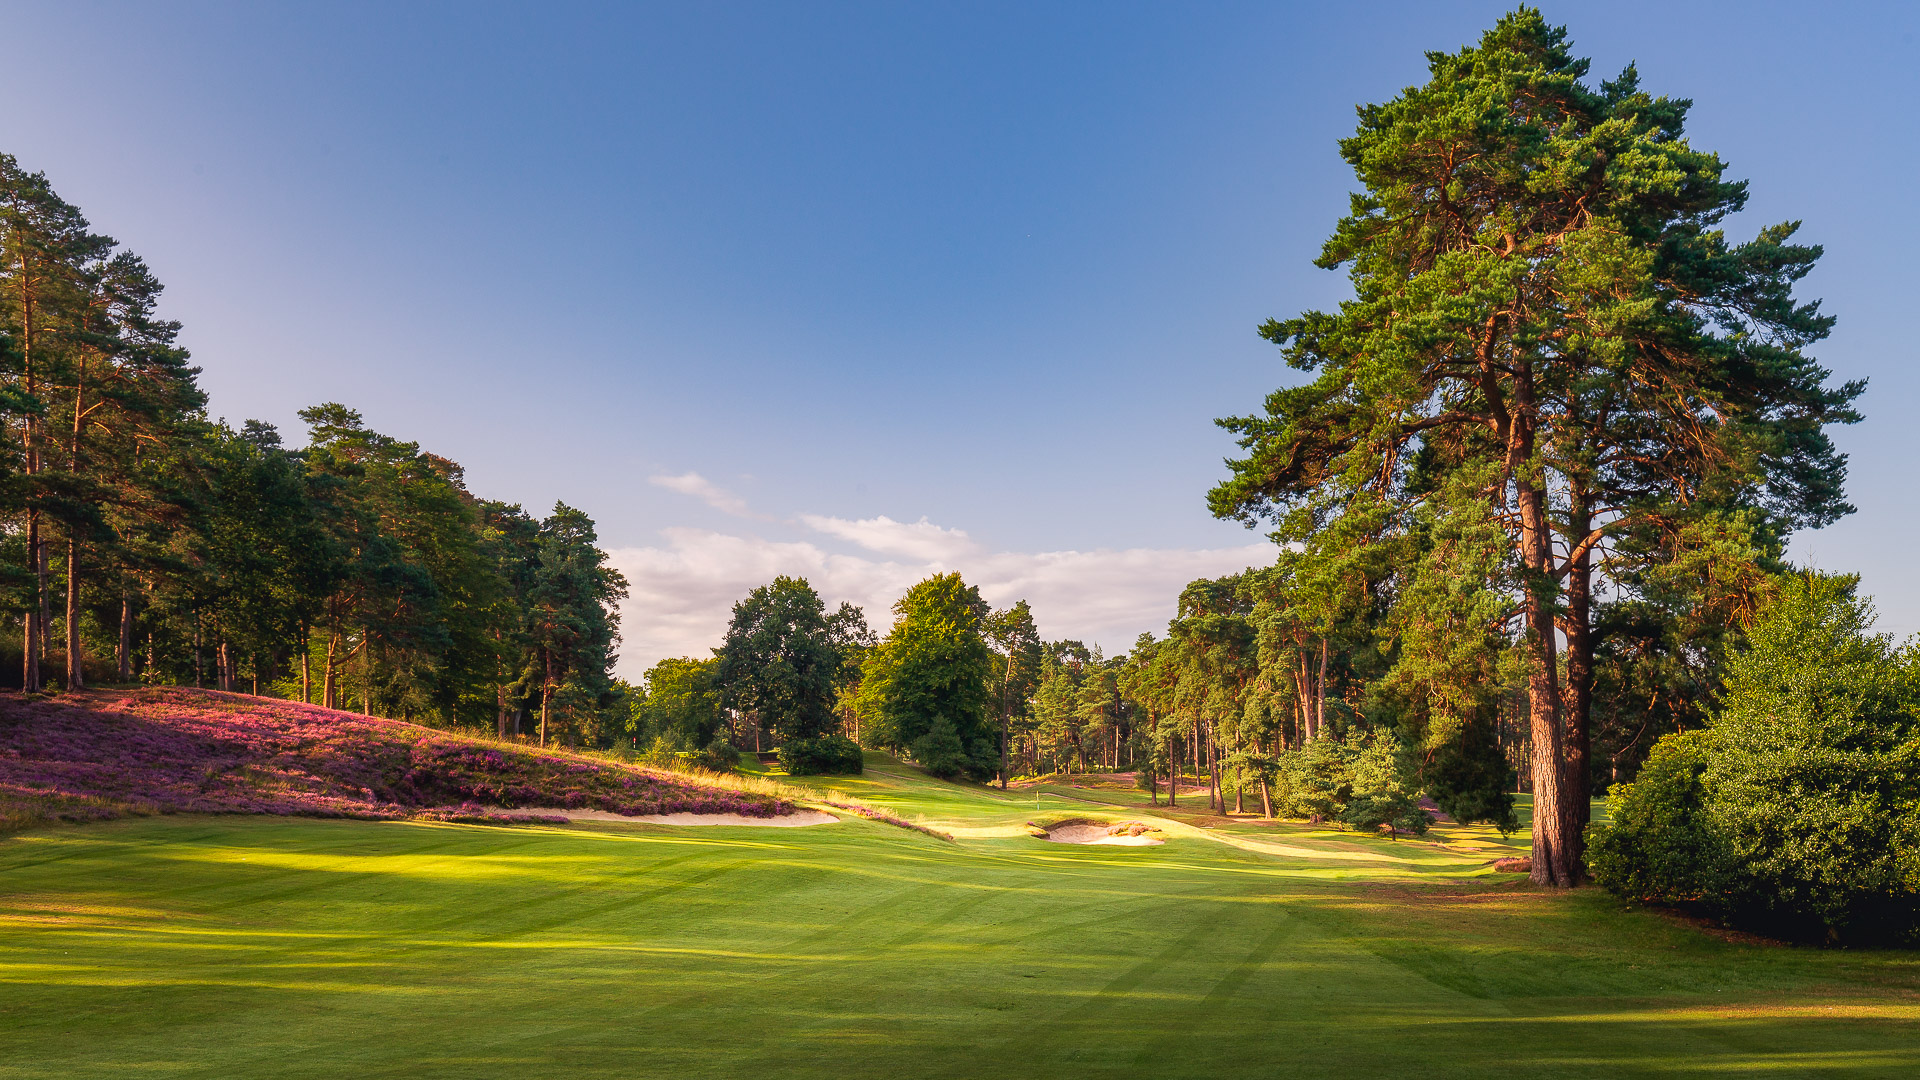 10th-Hole-St-Georges-Hill-Golf-Club-2228-Edit